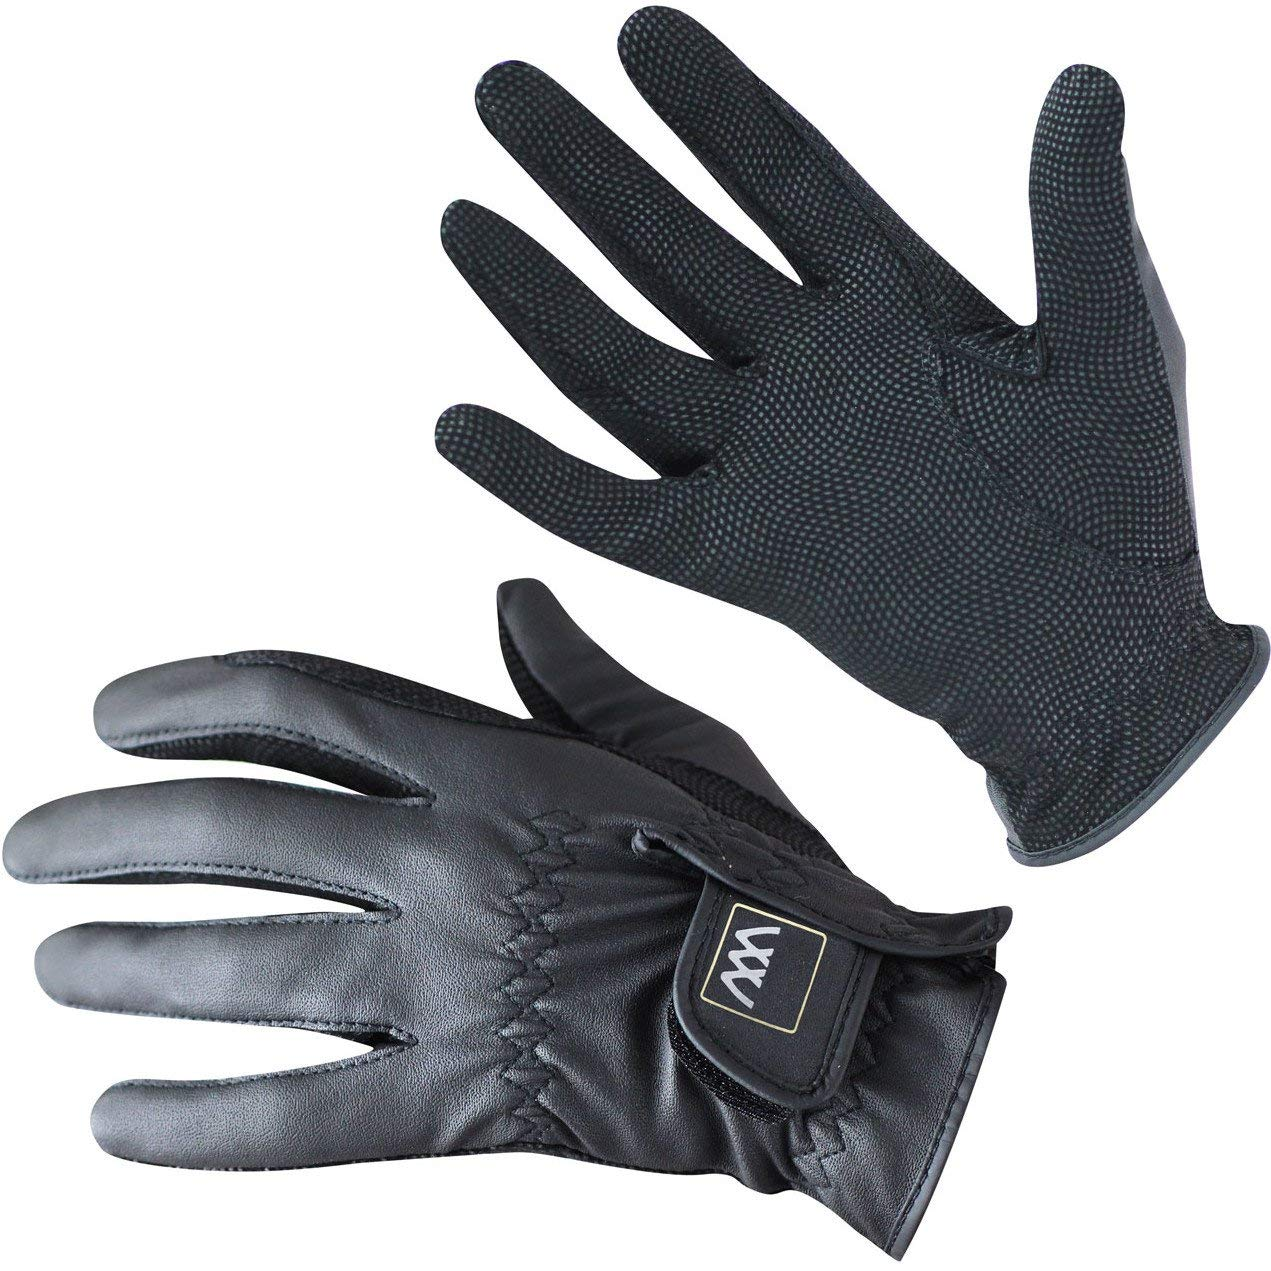 Woof Wear Synthetic Competition Glove B01DO7XDOK Handschuhe Exportieren